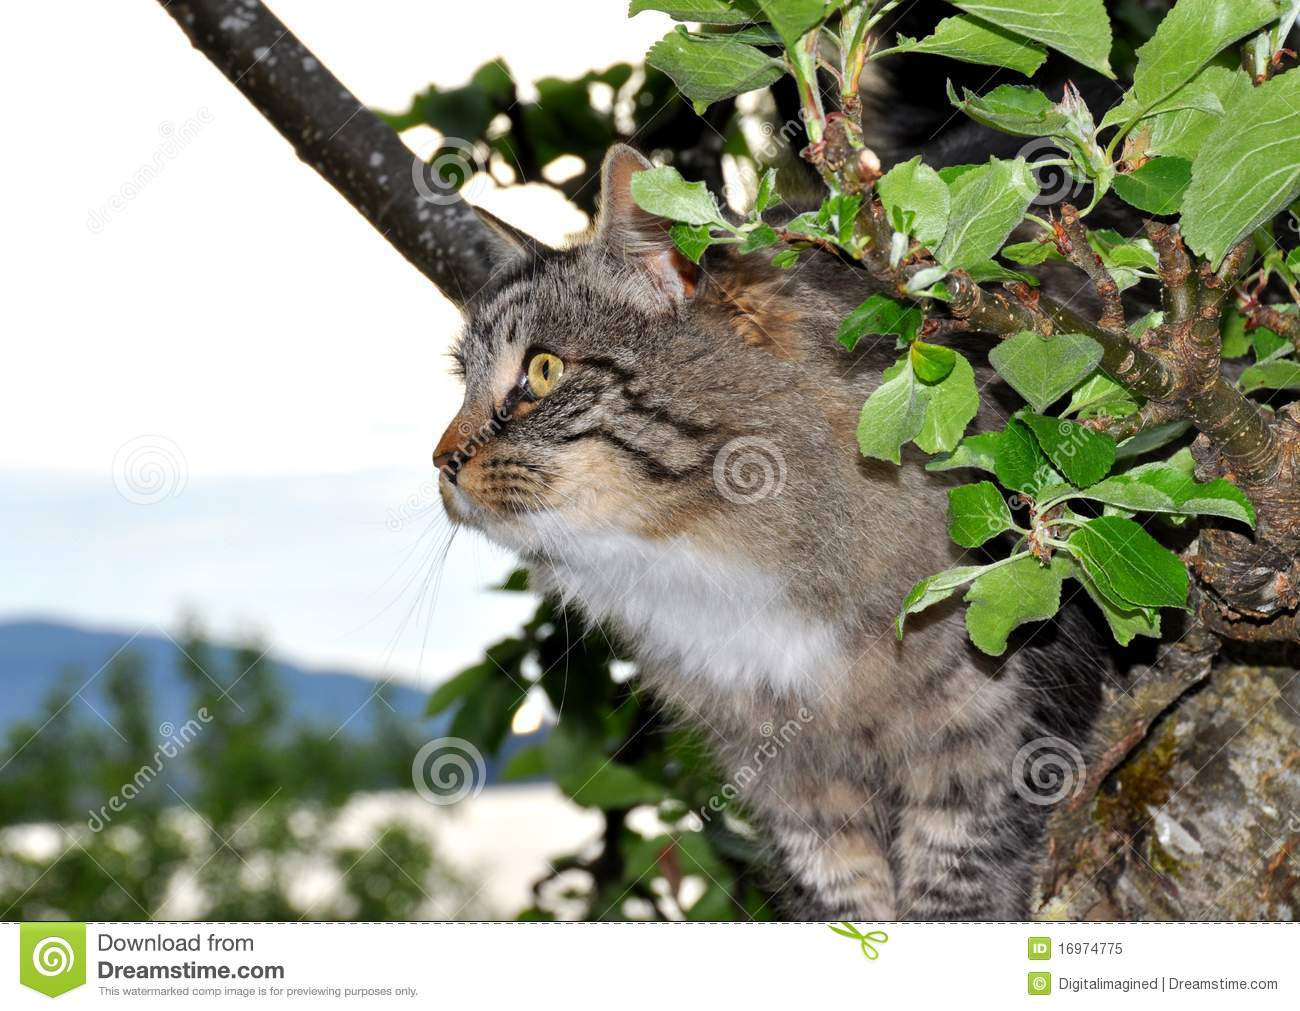 cat in apple tree stock image image of branch climbing. Black Bedroom Furniture Sets. Home Design Ideas